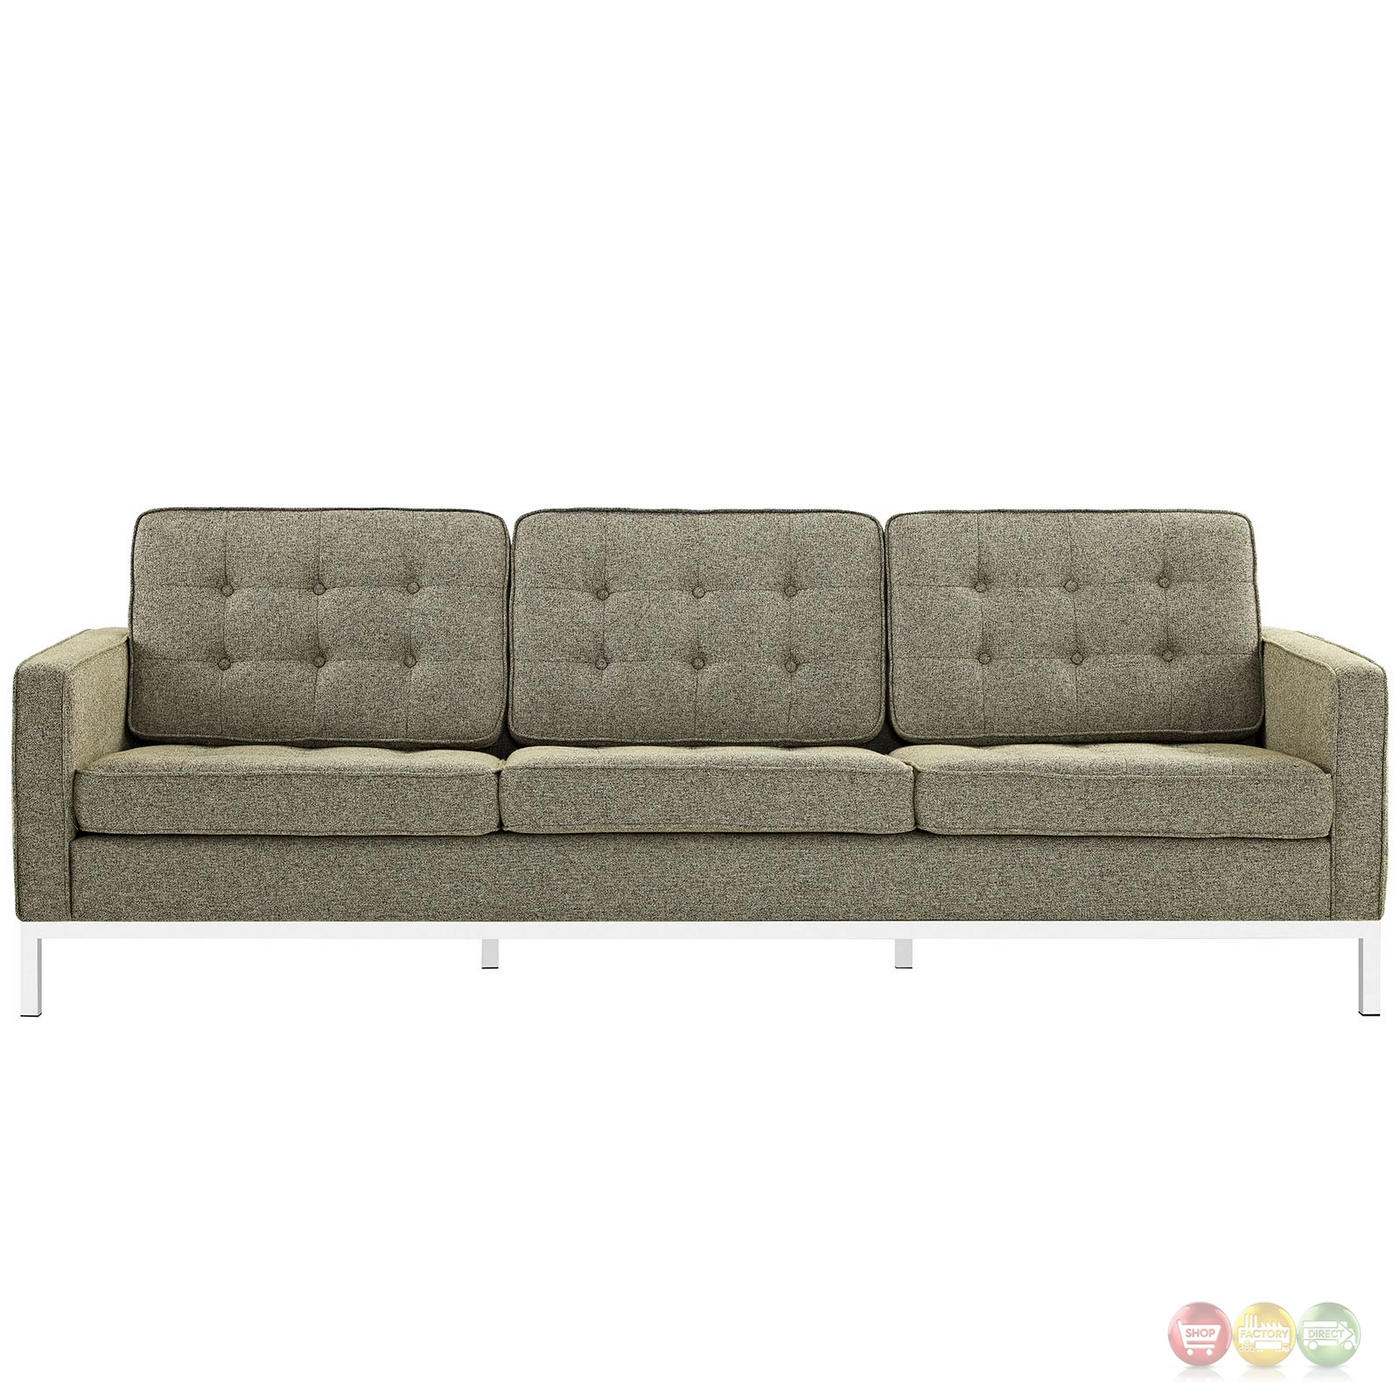 Loft Modern 2pc Upholstered Button Tufted Sofa Loveseat Set Oatmeal